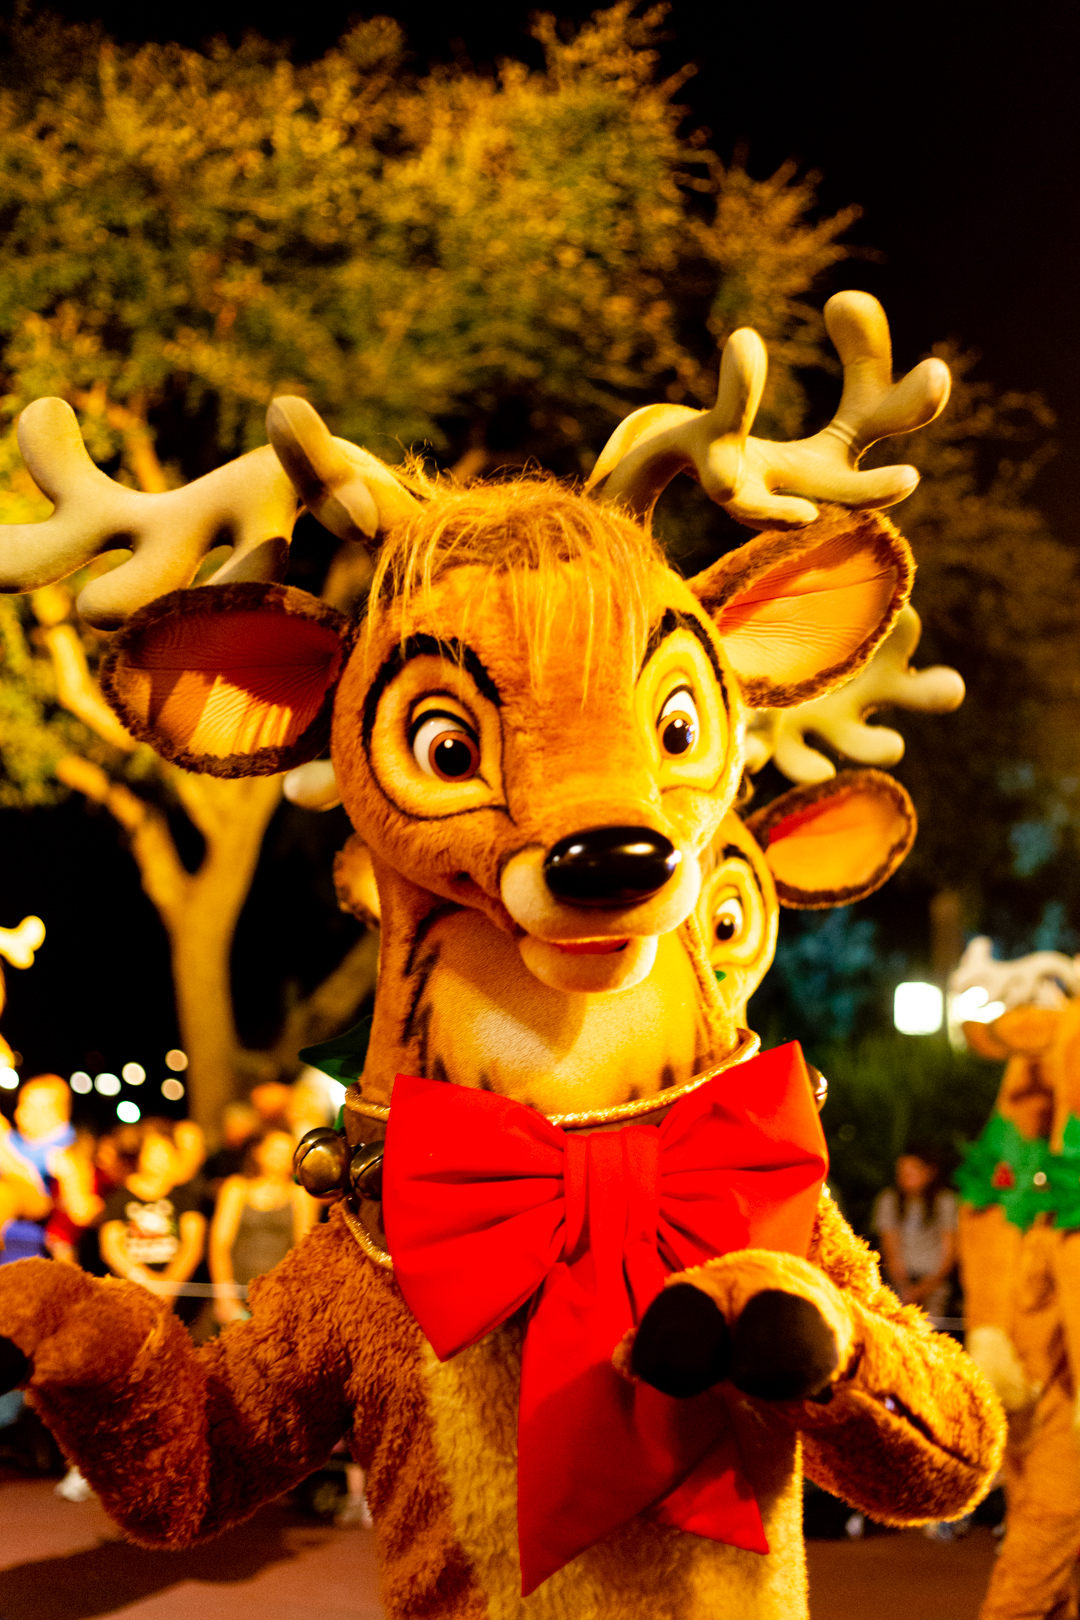 Reindeer in the Very Merry Parade at WDW.